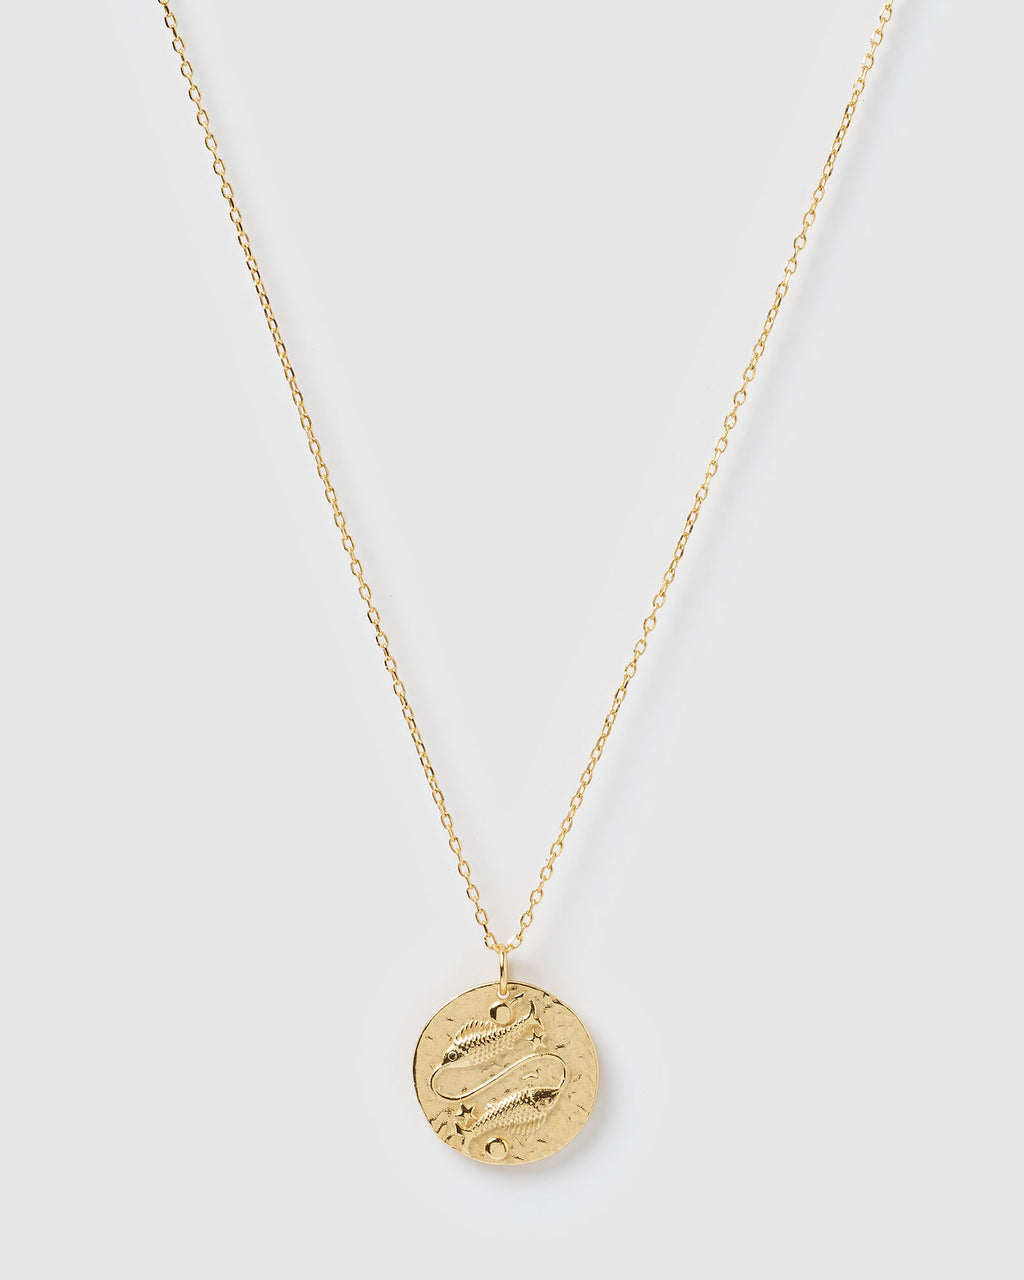 Izoa Star Sign Necklace Pisces Gold